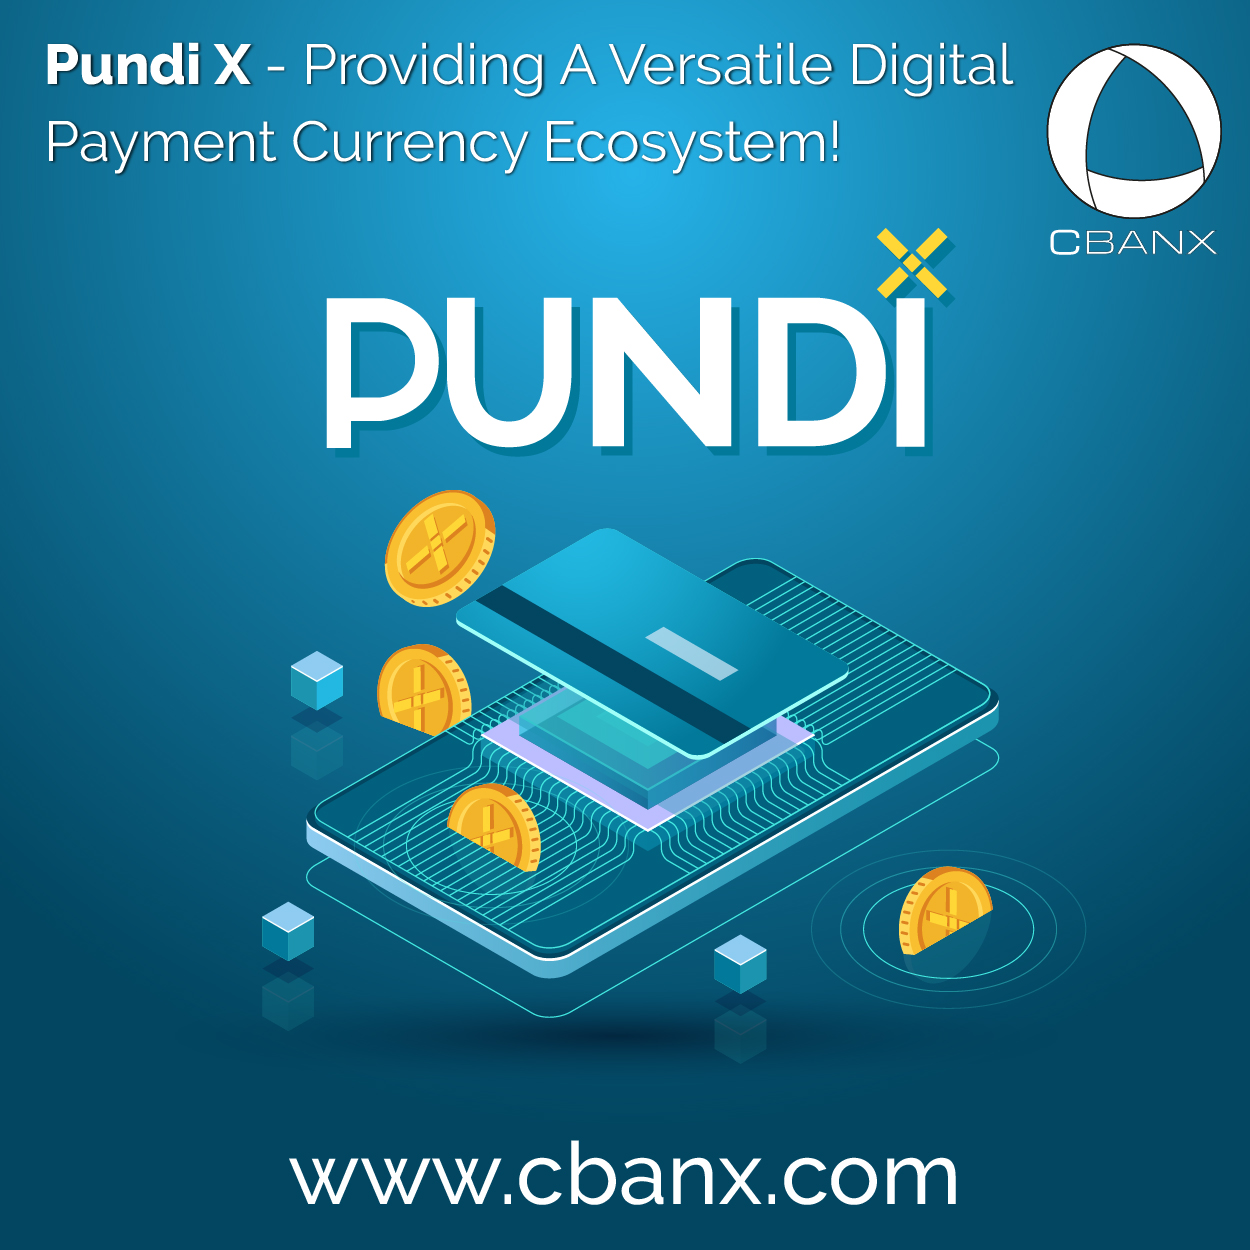 Pundi X – Providing A Versatile Digital Payment Currency Ecosystem!